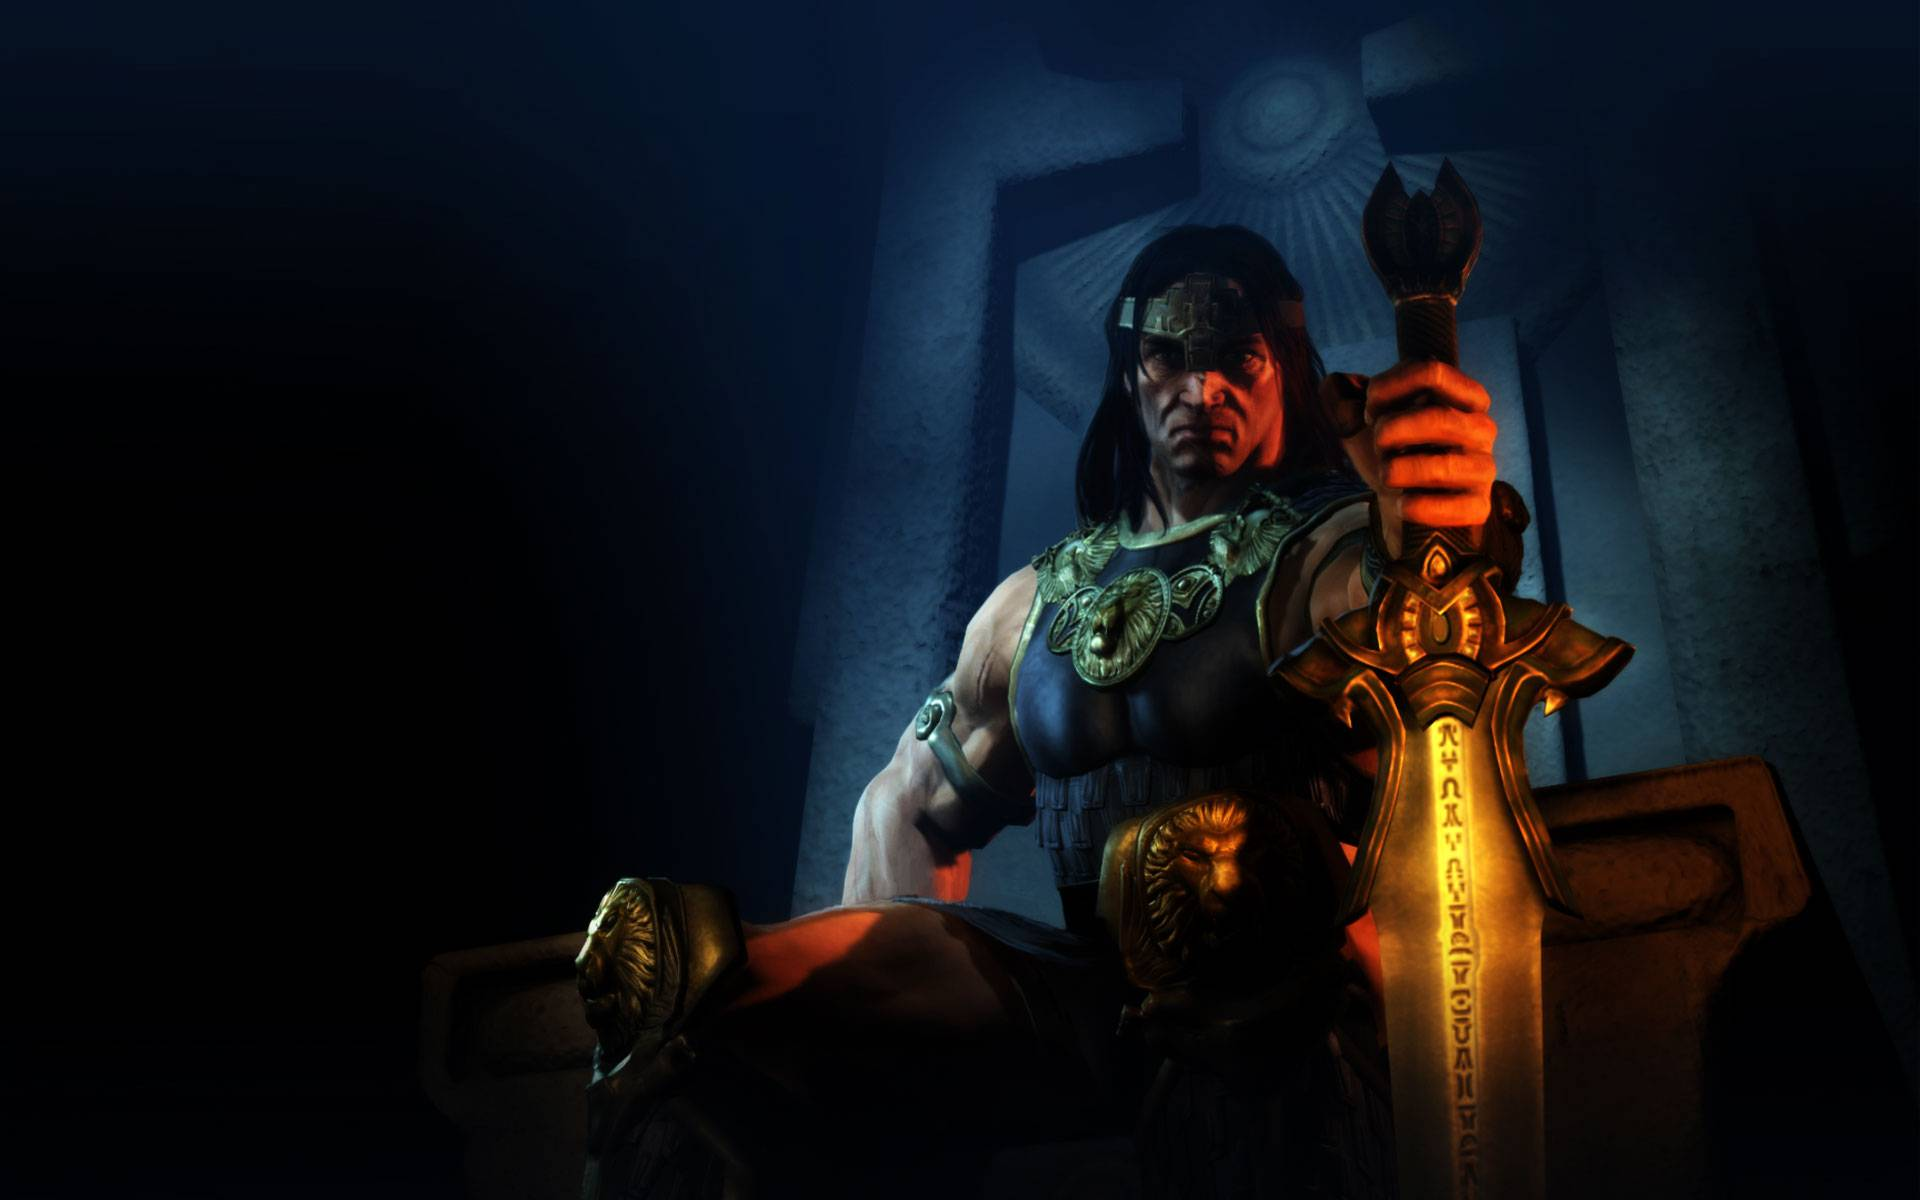 age of conan launches festival of bloodshed age of conan is happy to 1920x1200